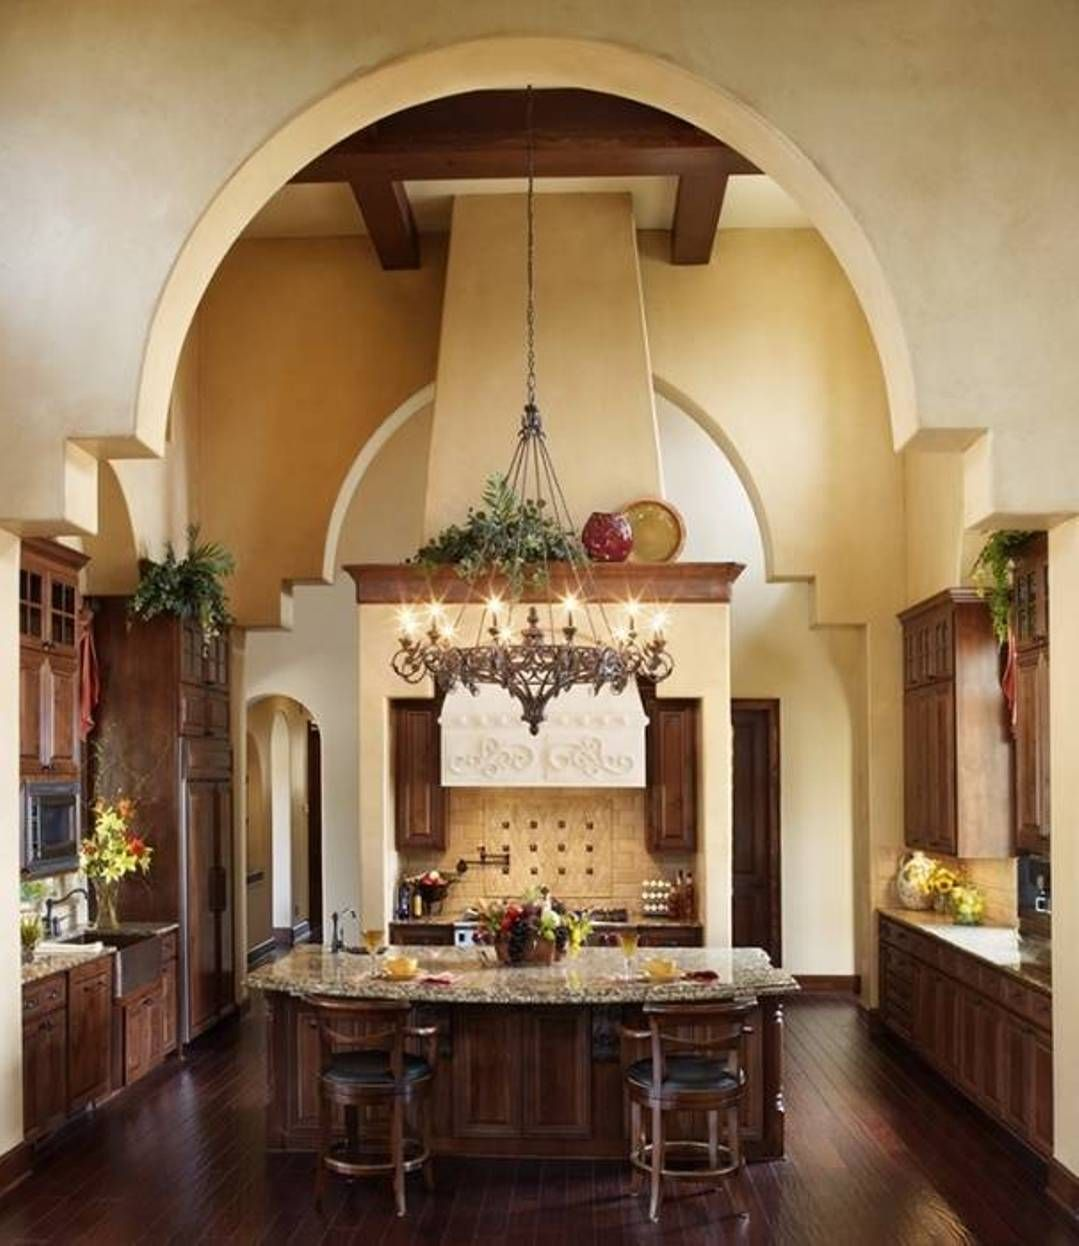 Center Island With Adorable Chandelier In Tuscan Kitchen